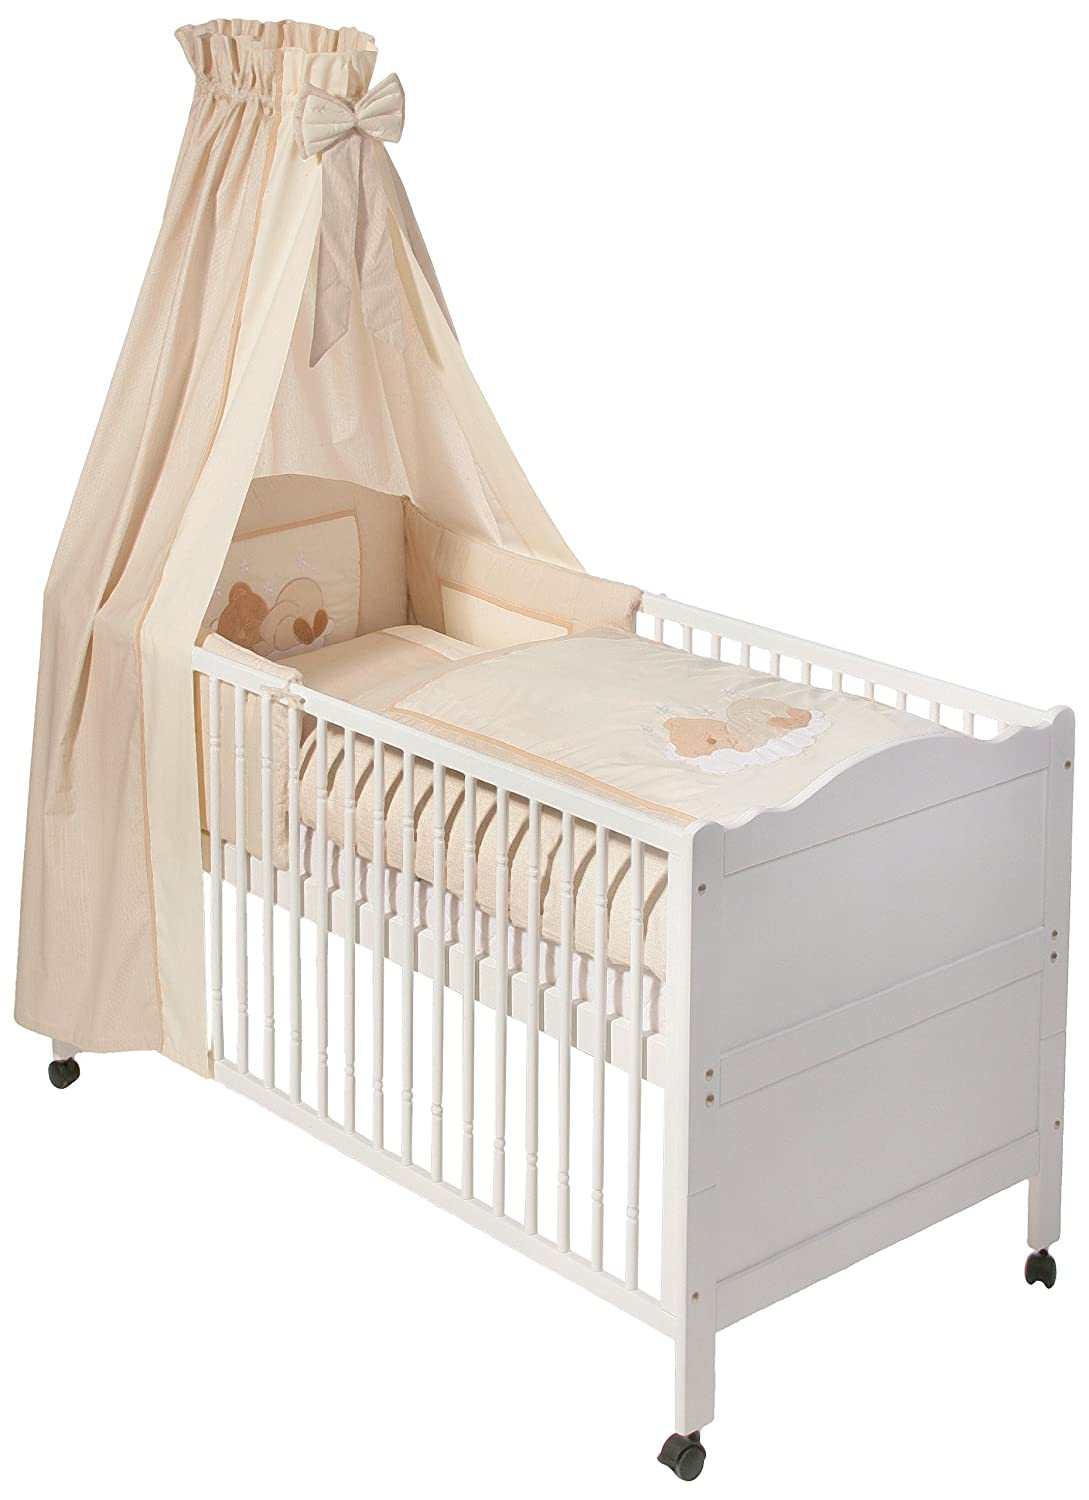 Easy Baby Bettset - Sleeping Bear Natur